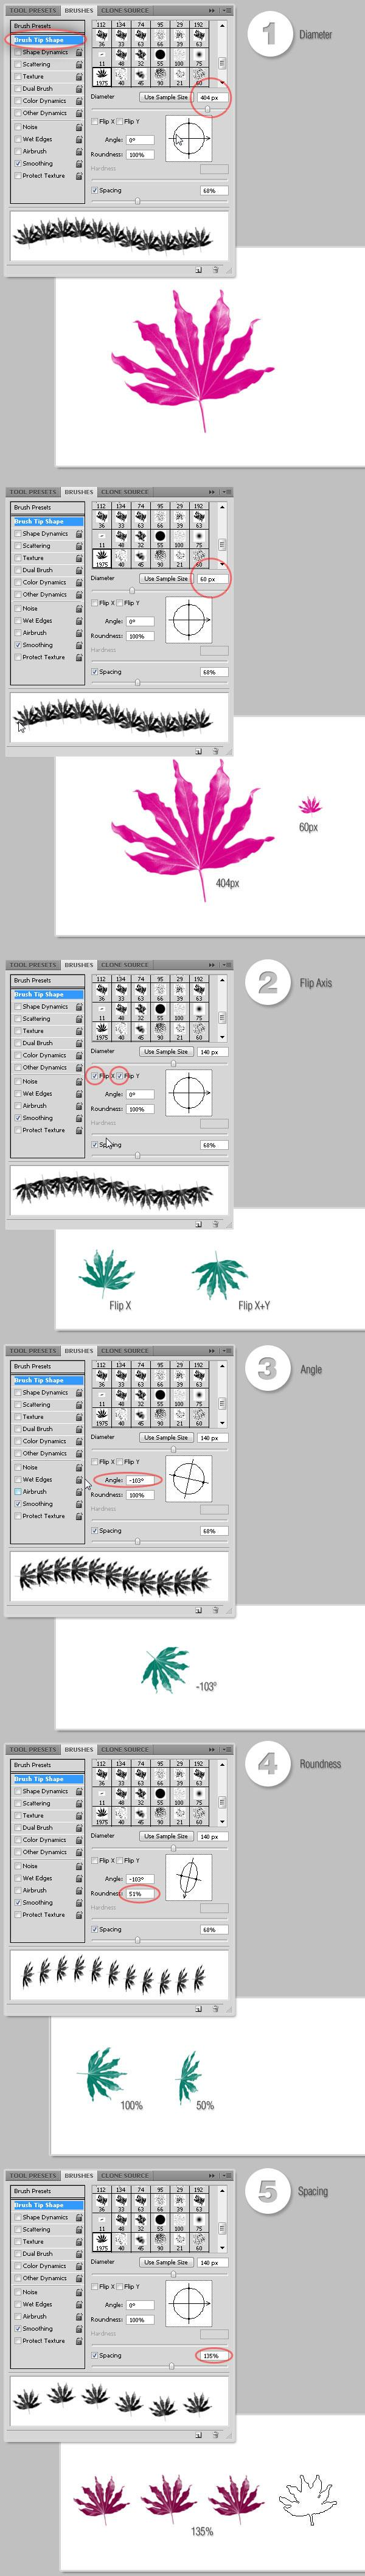 Photoshops Brush Guide For Beginners